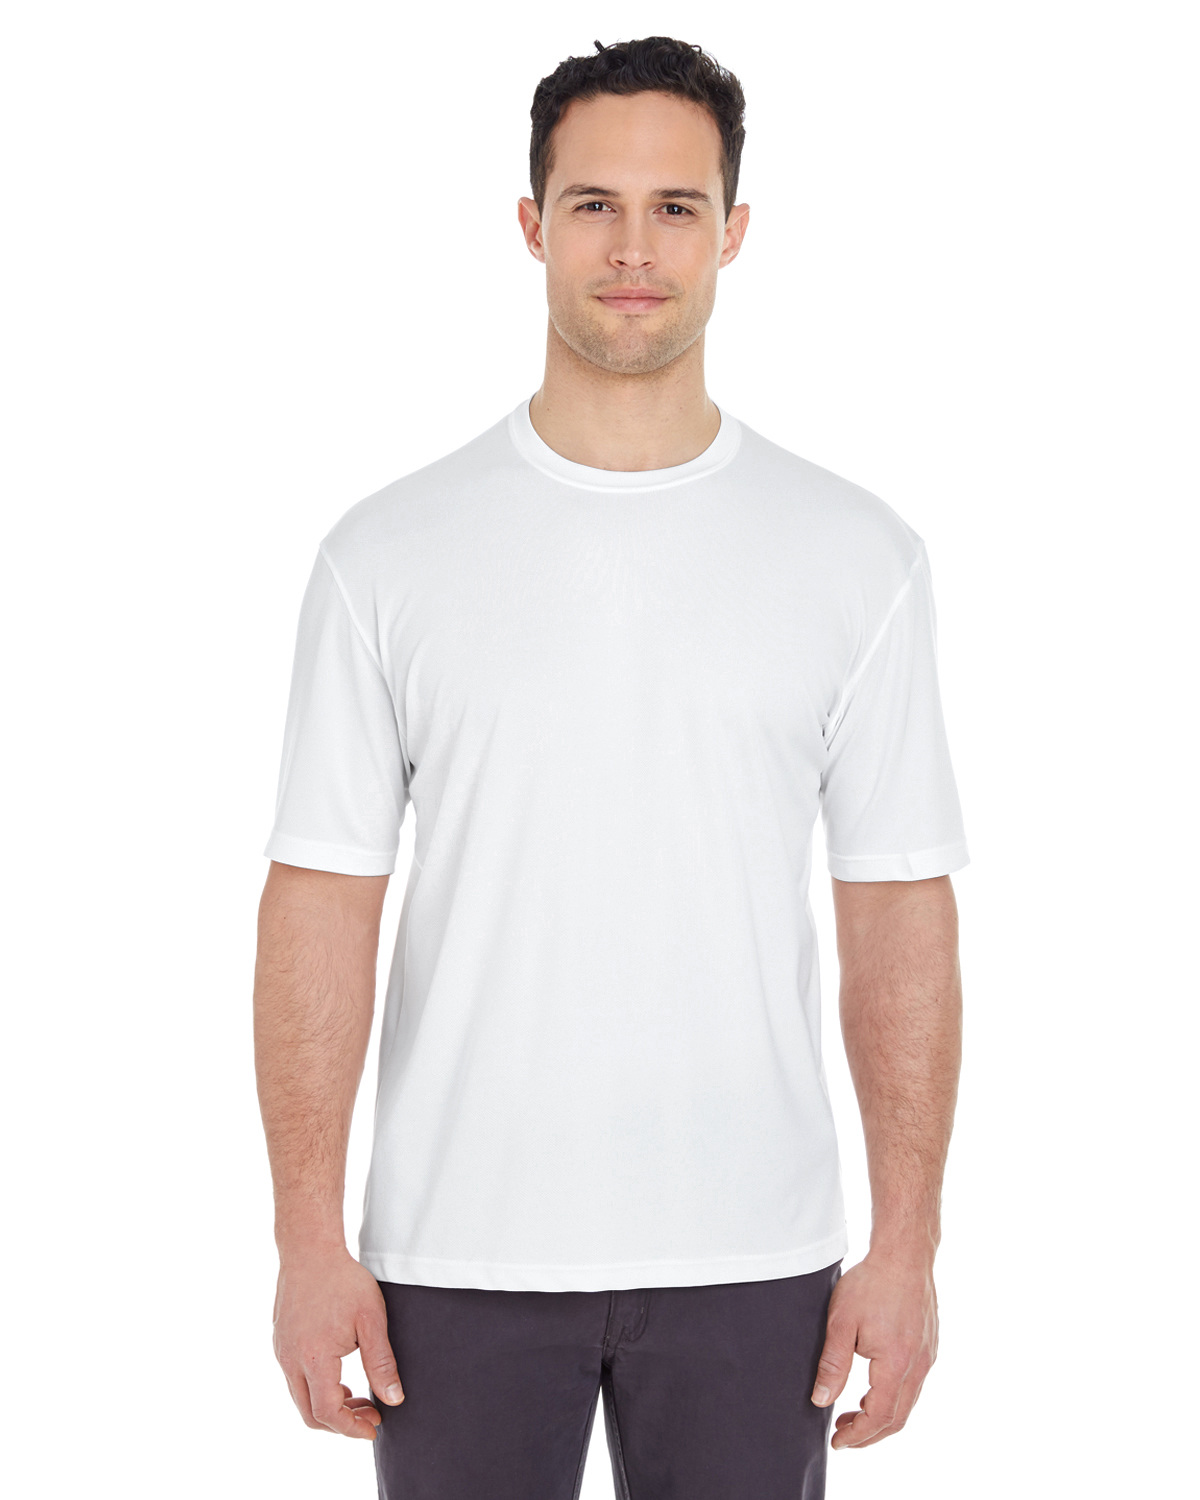 Men's Cool & Dry Sport T-Shirt